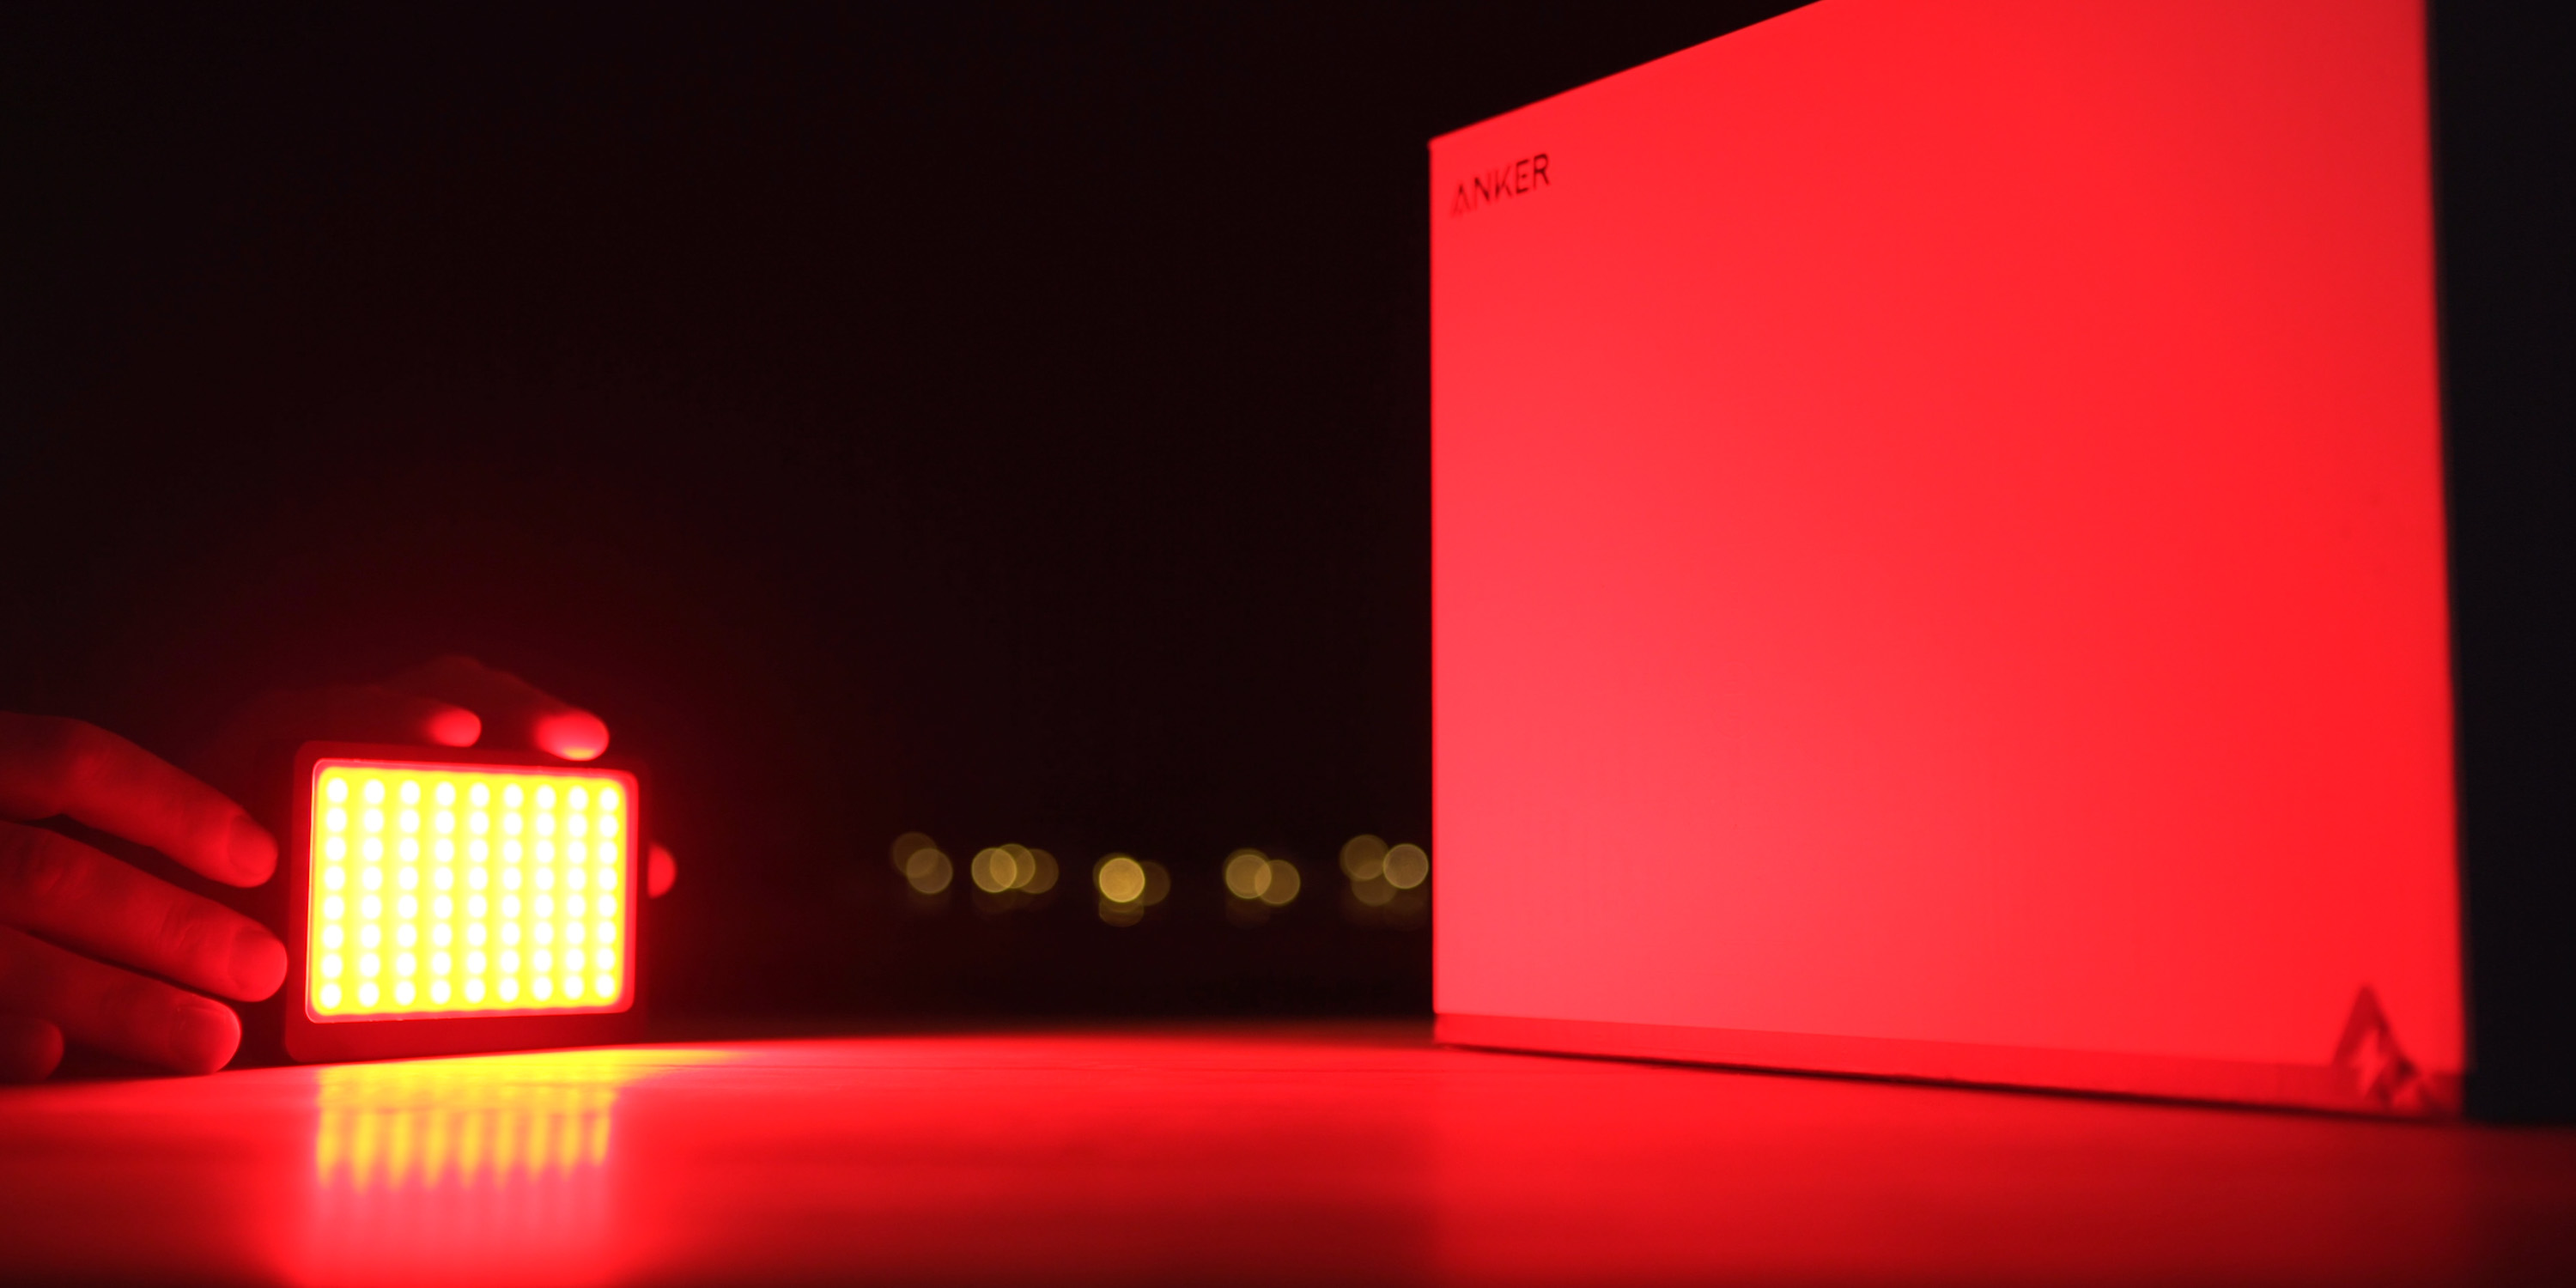 Using the Sandmarc Prolight RGB on the side of a product box